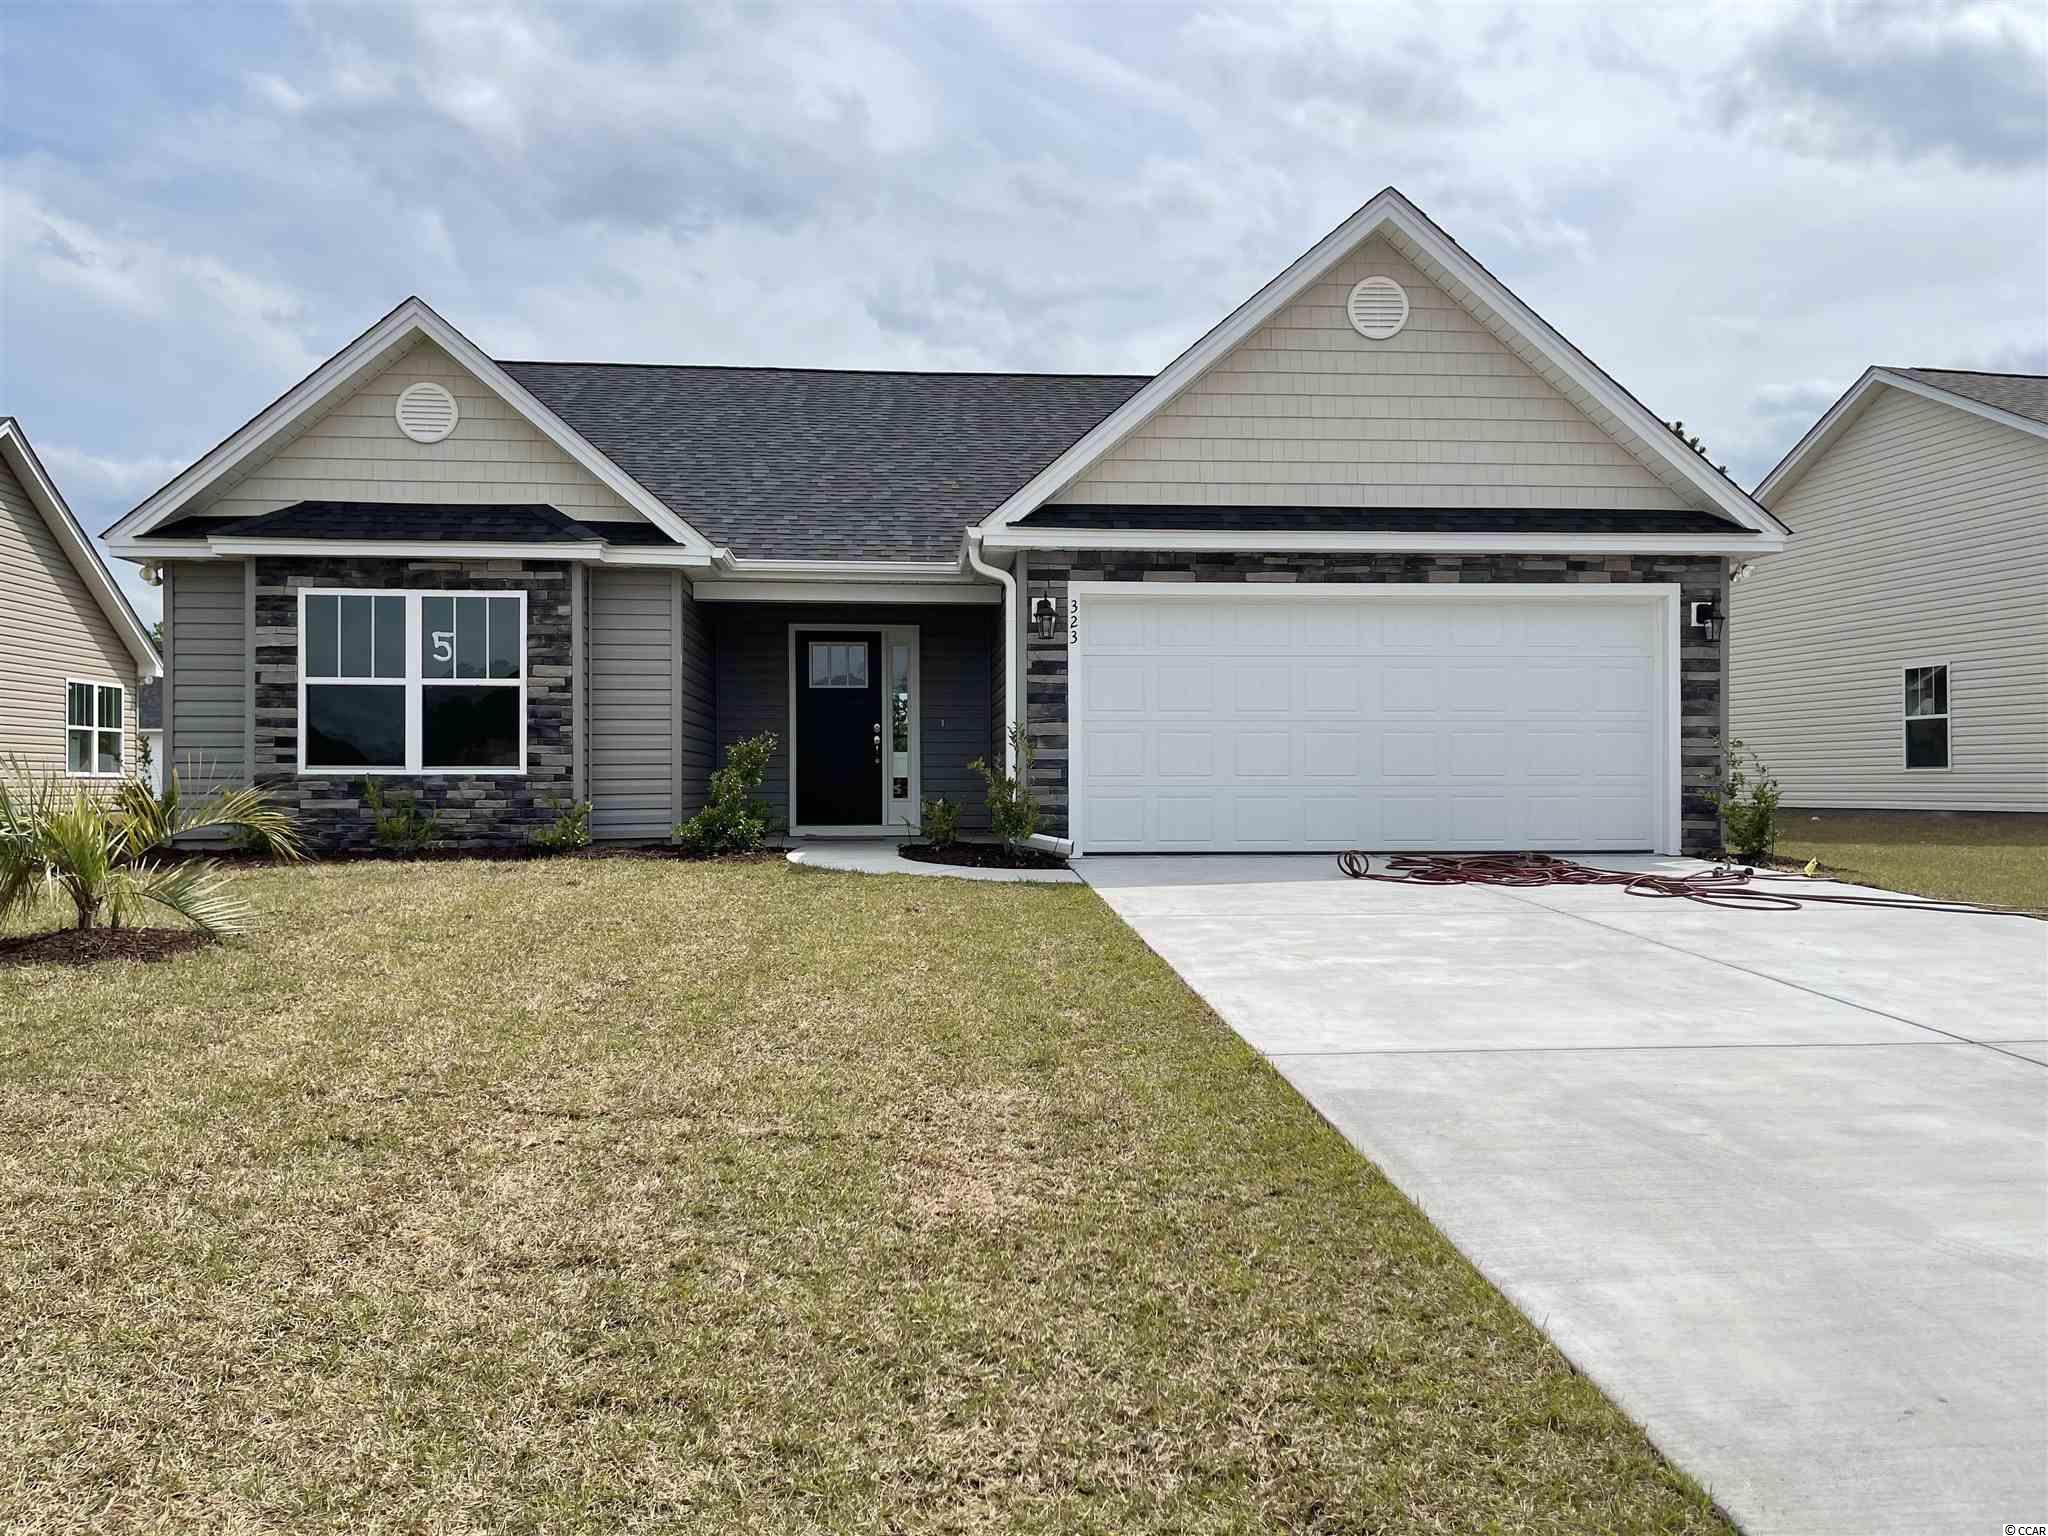 Red Hill commons is a new community located in Conway area only a few miles from the Beach and major shopping! This is the Princess floor plan with added expansion through center. Open floor plan on a 0.18 ac home site featuring 3 bedrooms, 2 baths. this home includes a finished 2 car garage with garage openers. Ceramic tile in all bathrooms and Laundry room, Granite Kitchen Countertops, crown molding on kitchen cabinets with hardware included. Vaulted ceiling in Family room, every bedroom. Home also includes TAEXX pest control tubing!! Stone accents on the exterior as well. All measurements are approximate  Estimated completion time May 2021